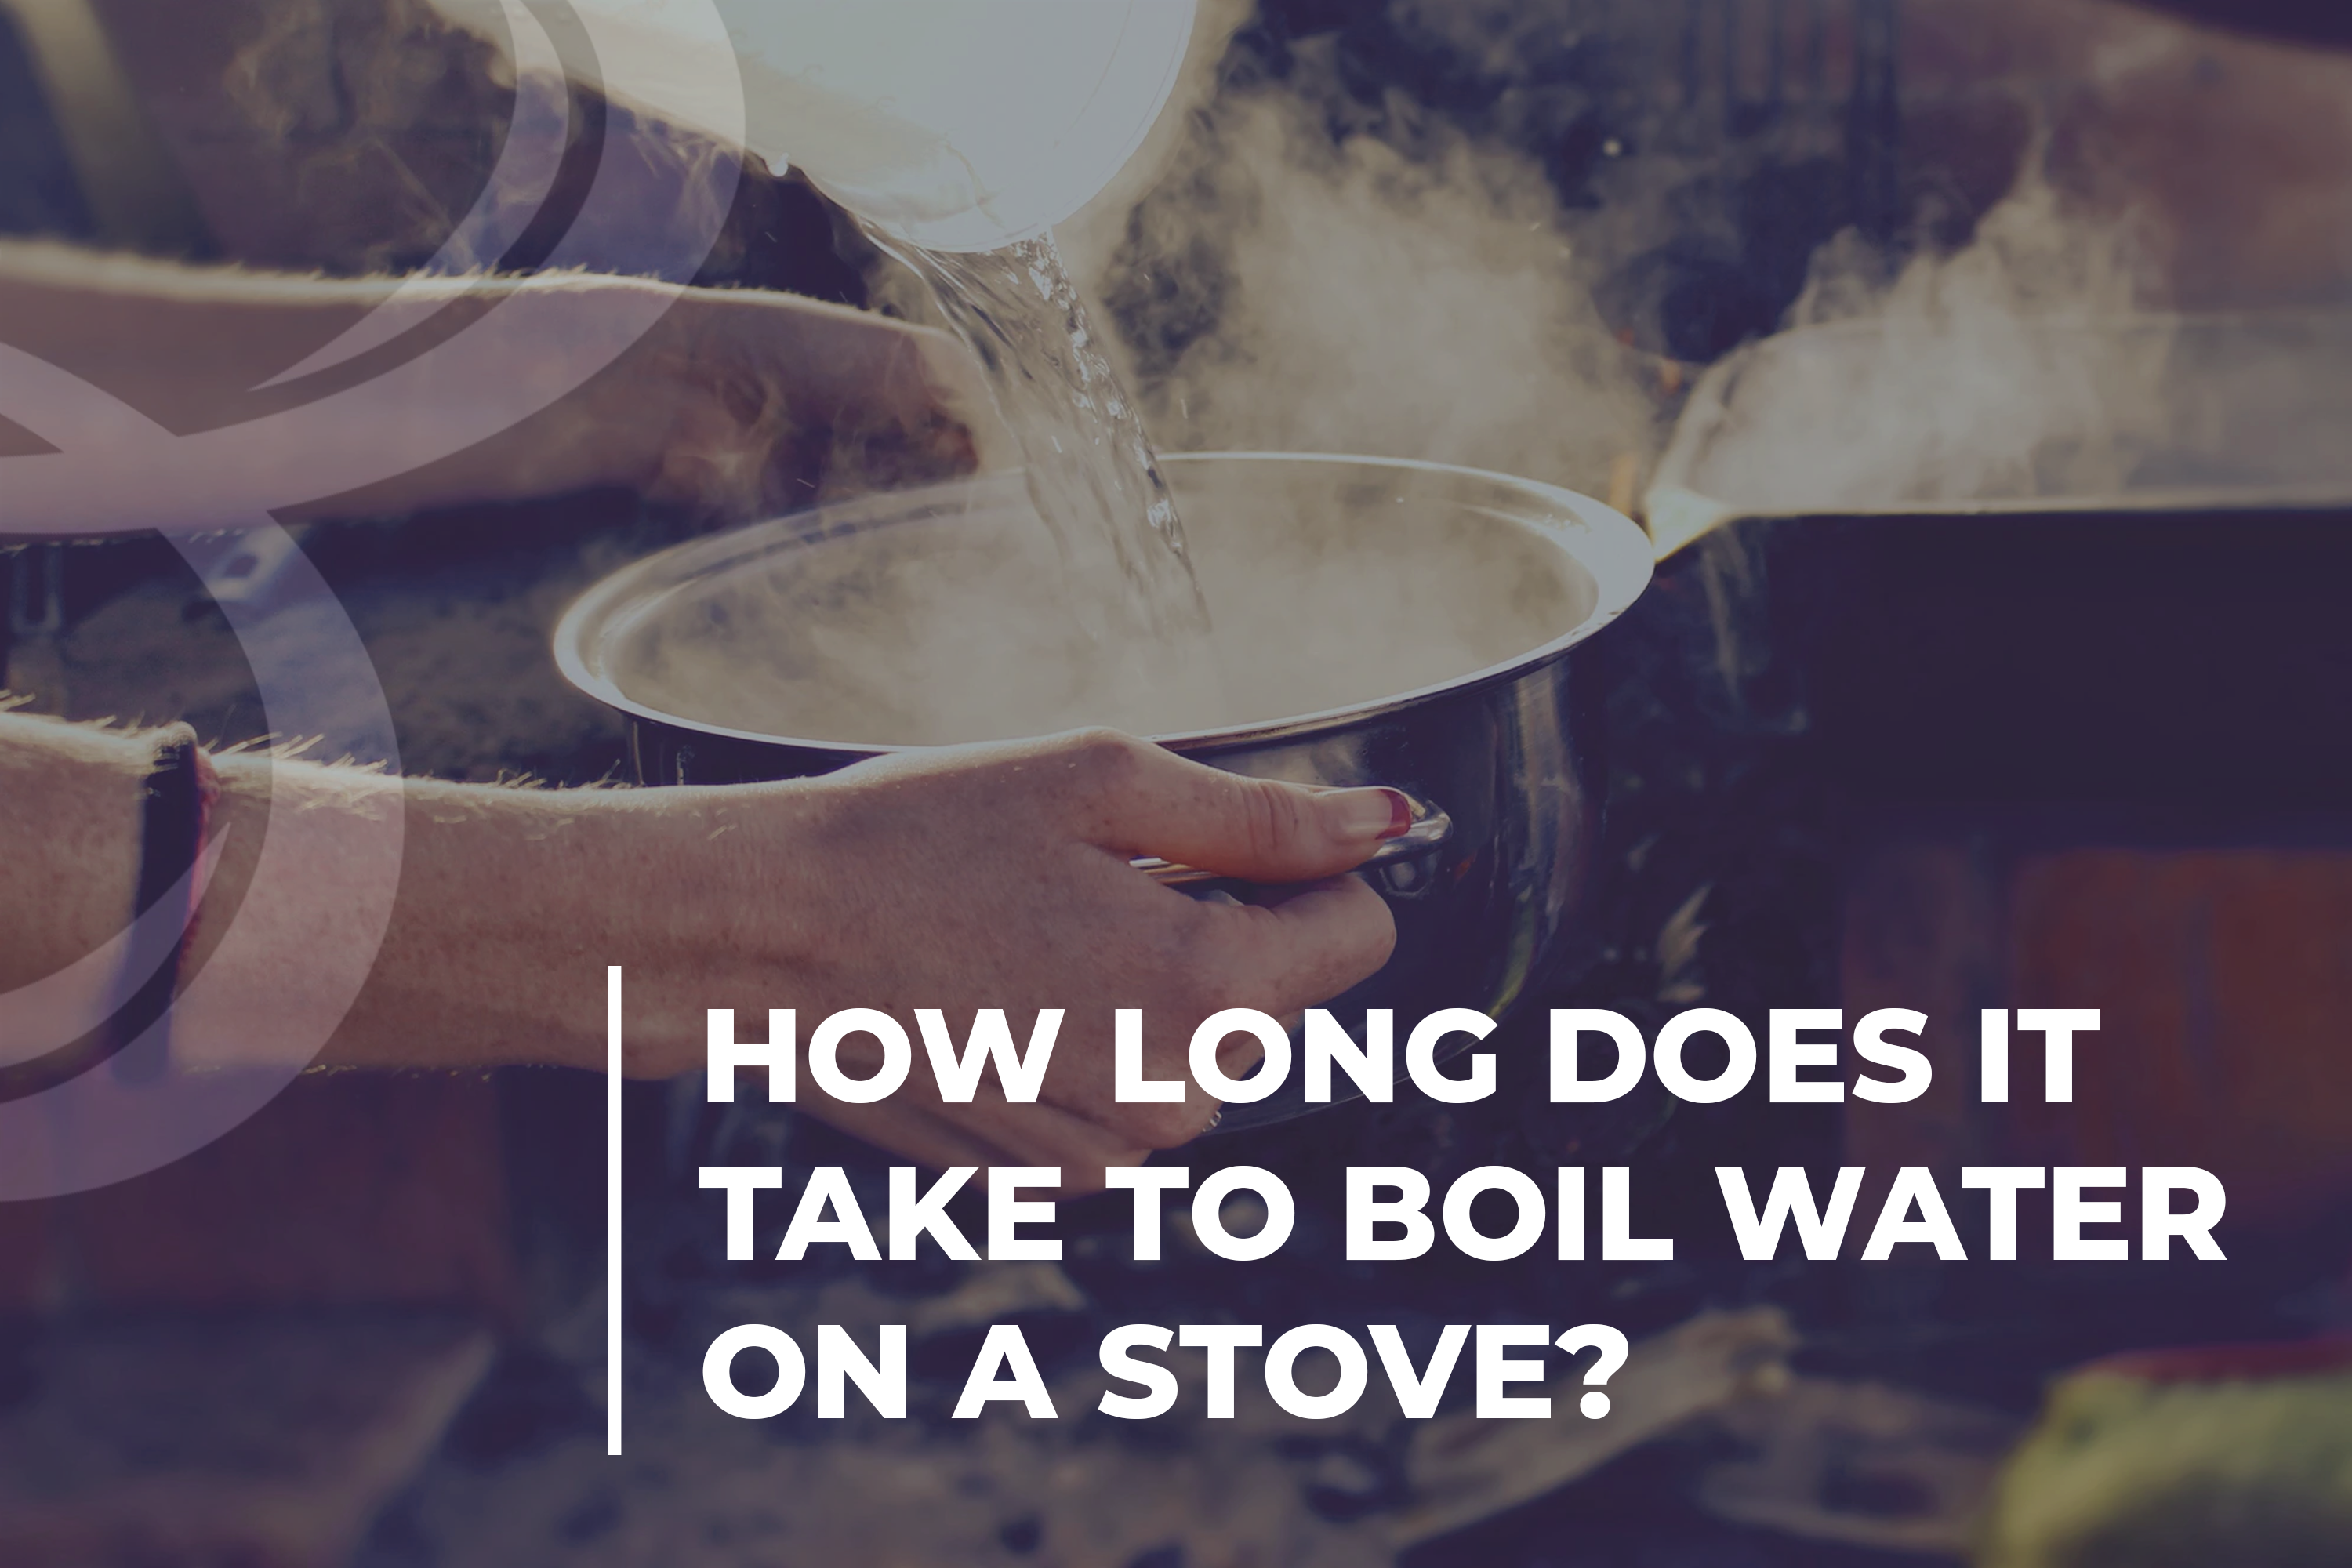 How long does it take to boil water on a stove